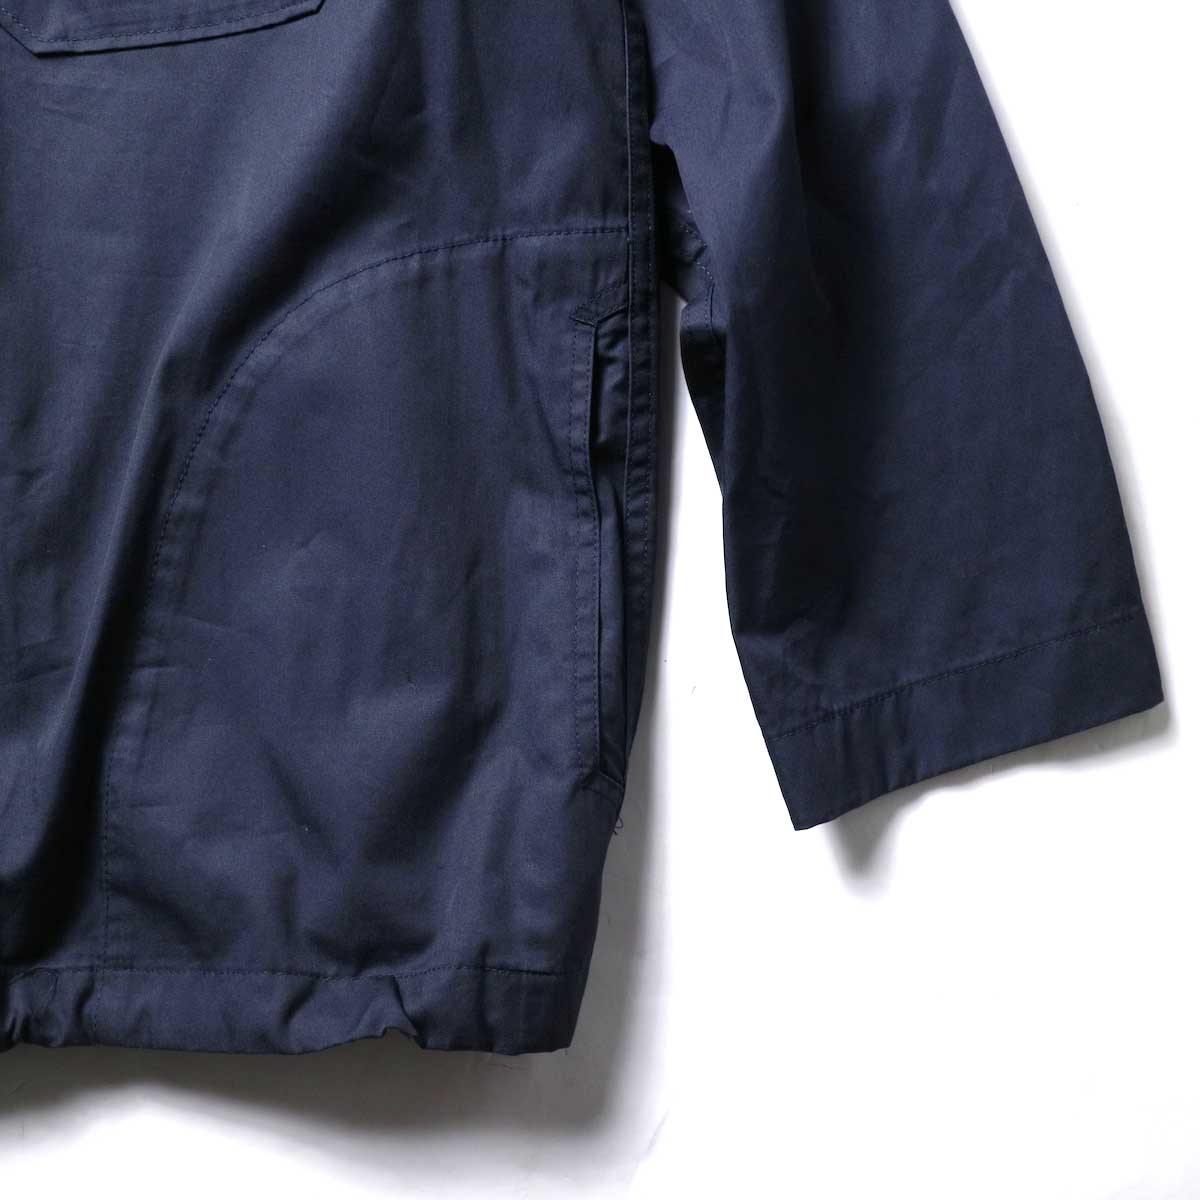 Engineered Garments / Cagoule Shirt -High Count Twill (Dk.Navy)ポケット、袖